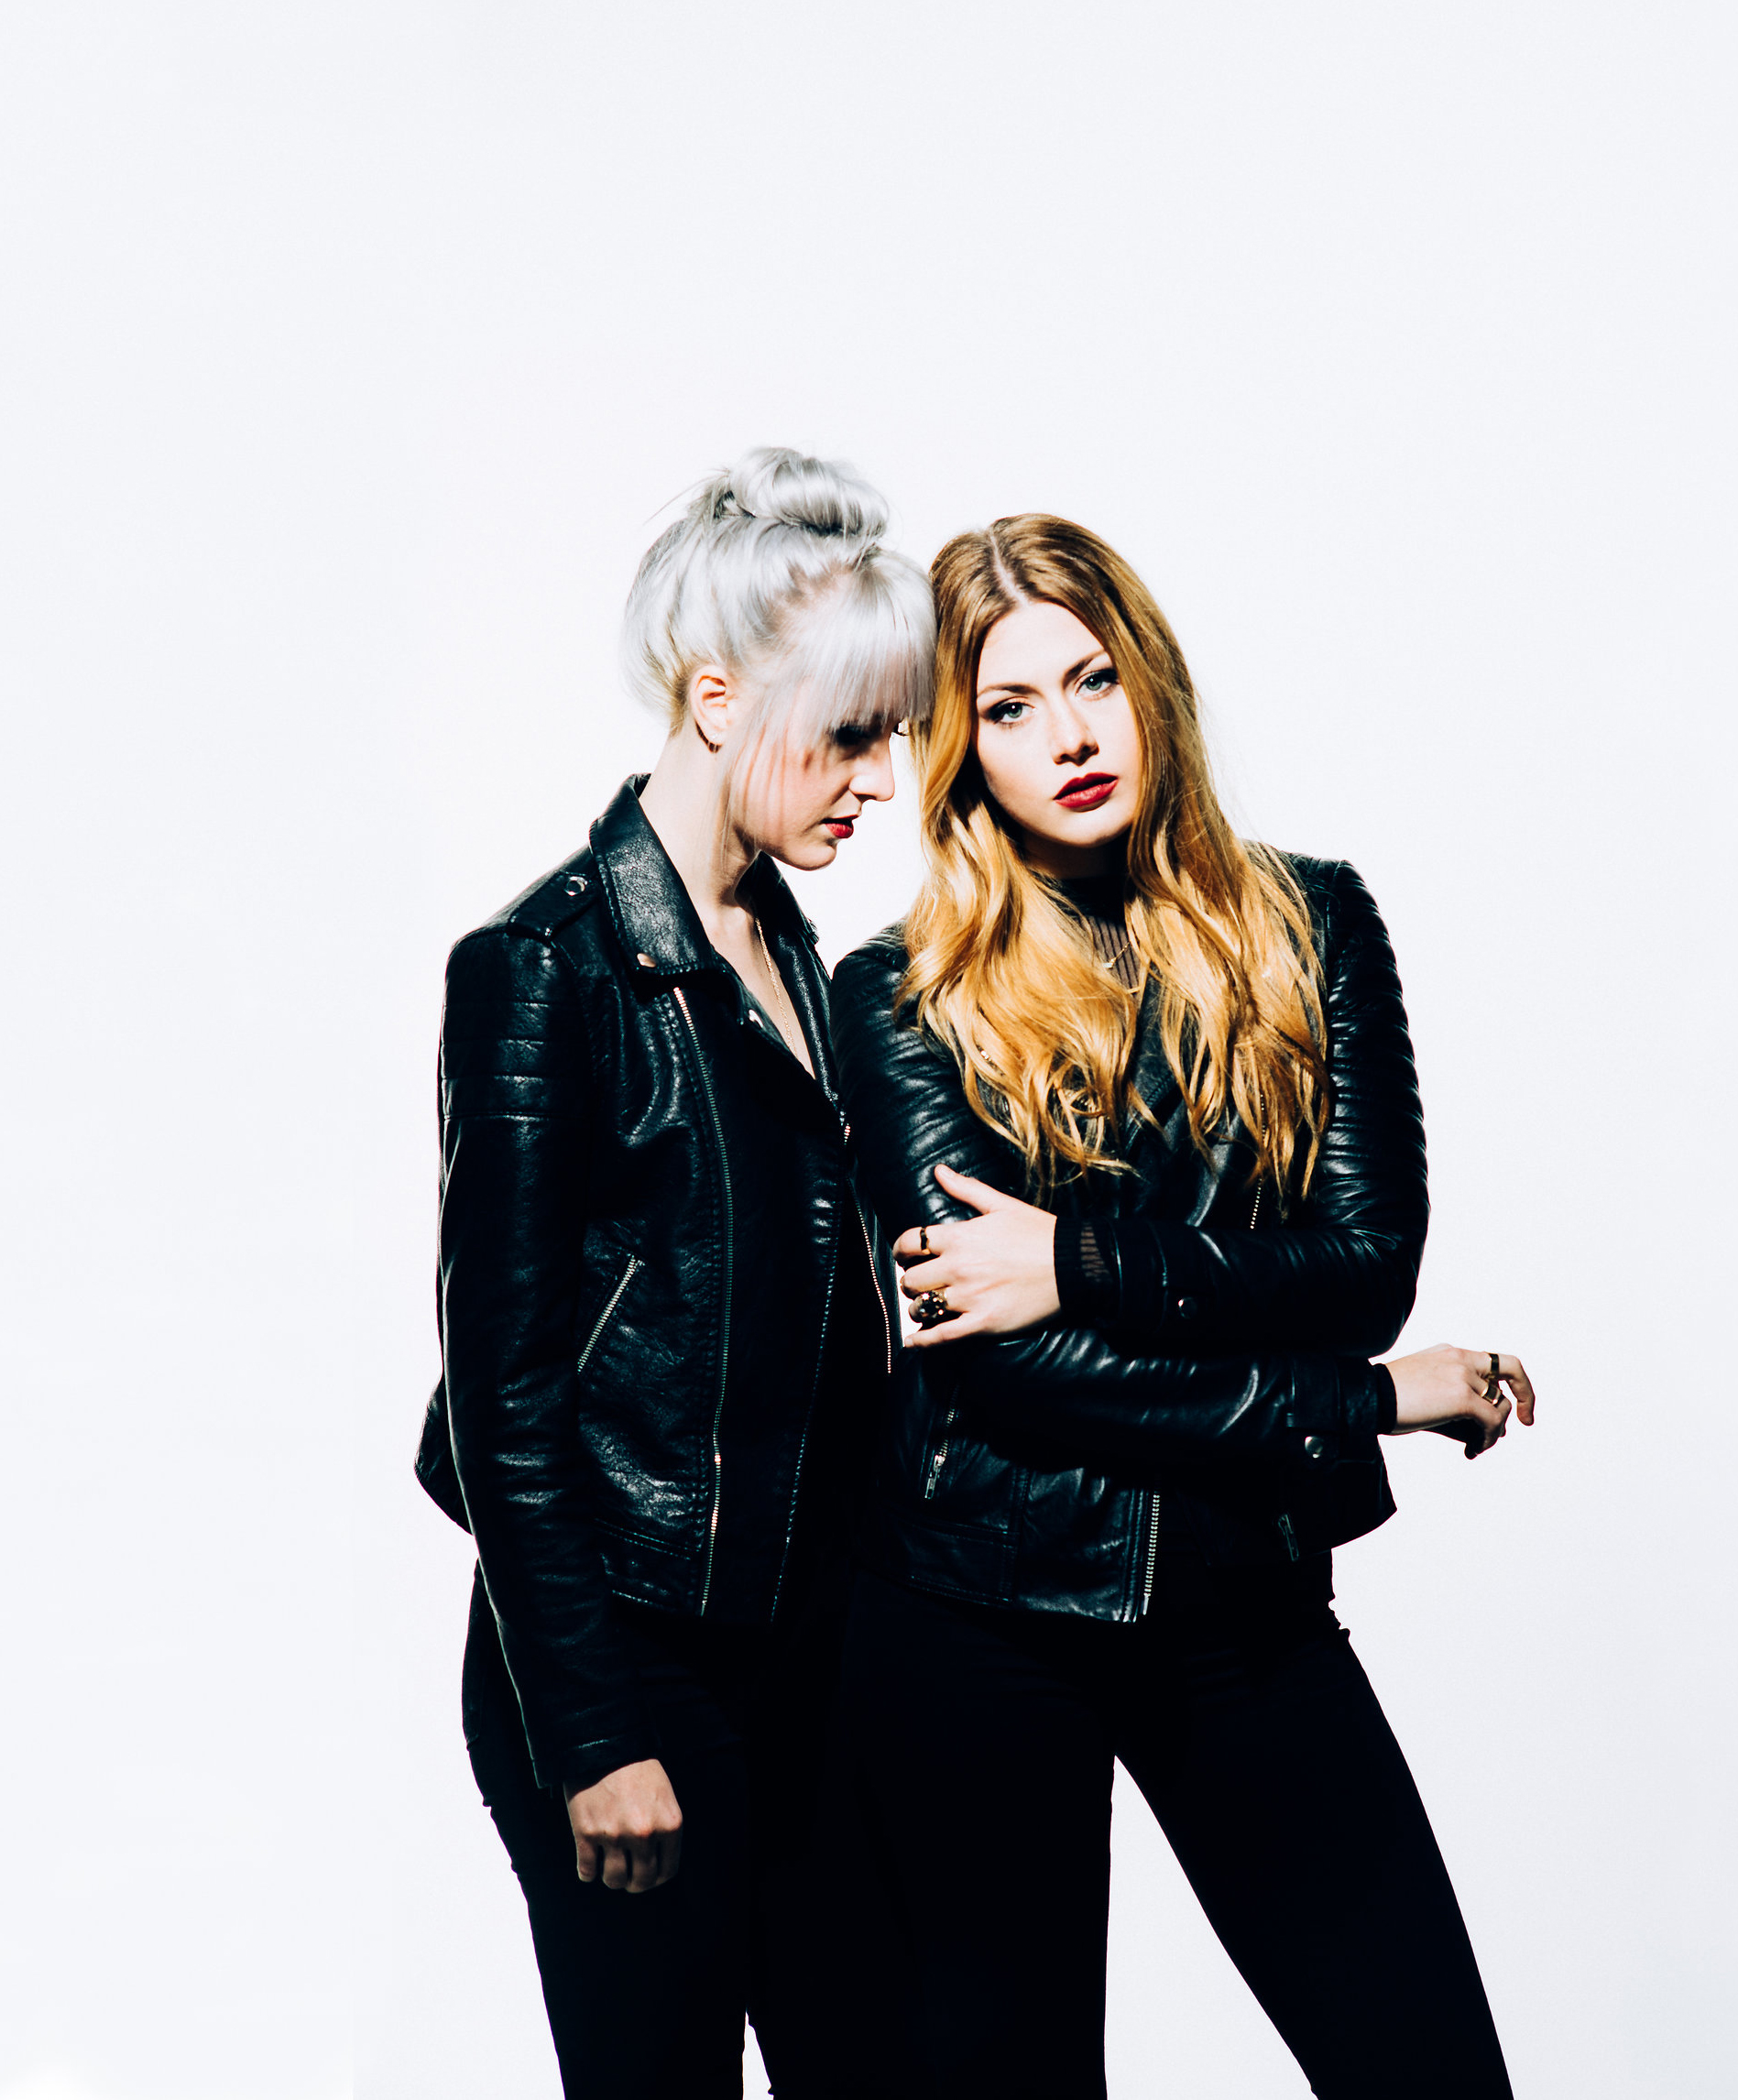 LarkinPoe_crop